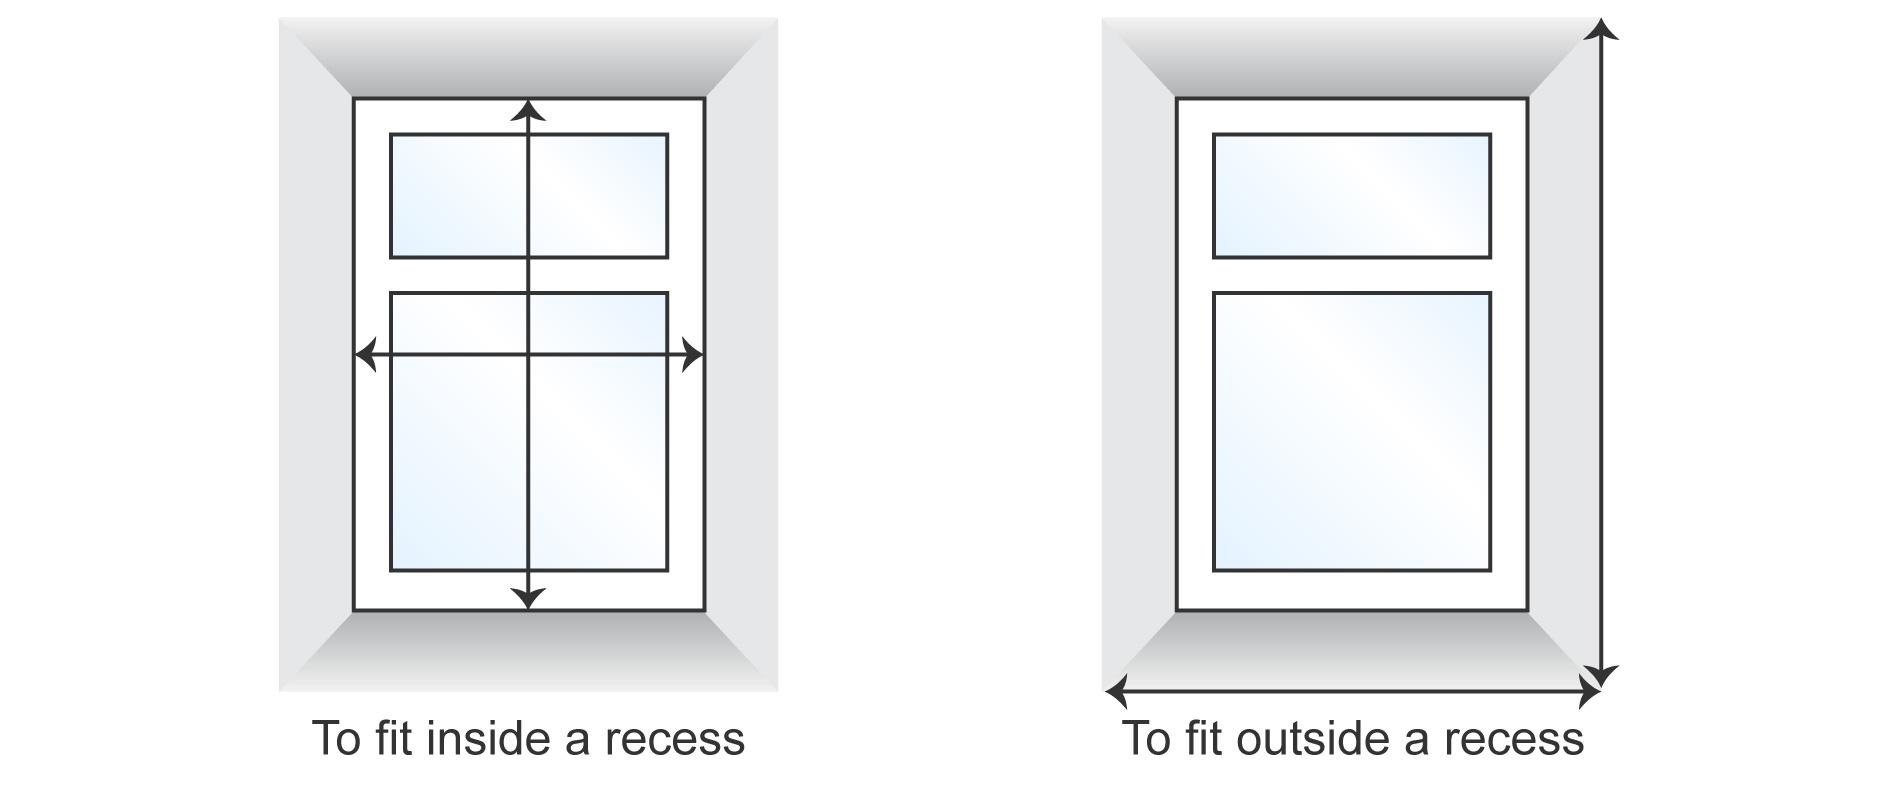 Measuring windows with a recess